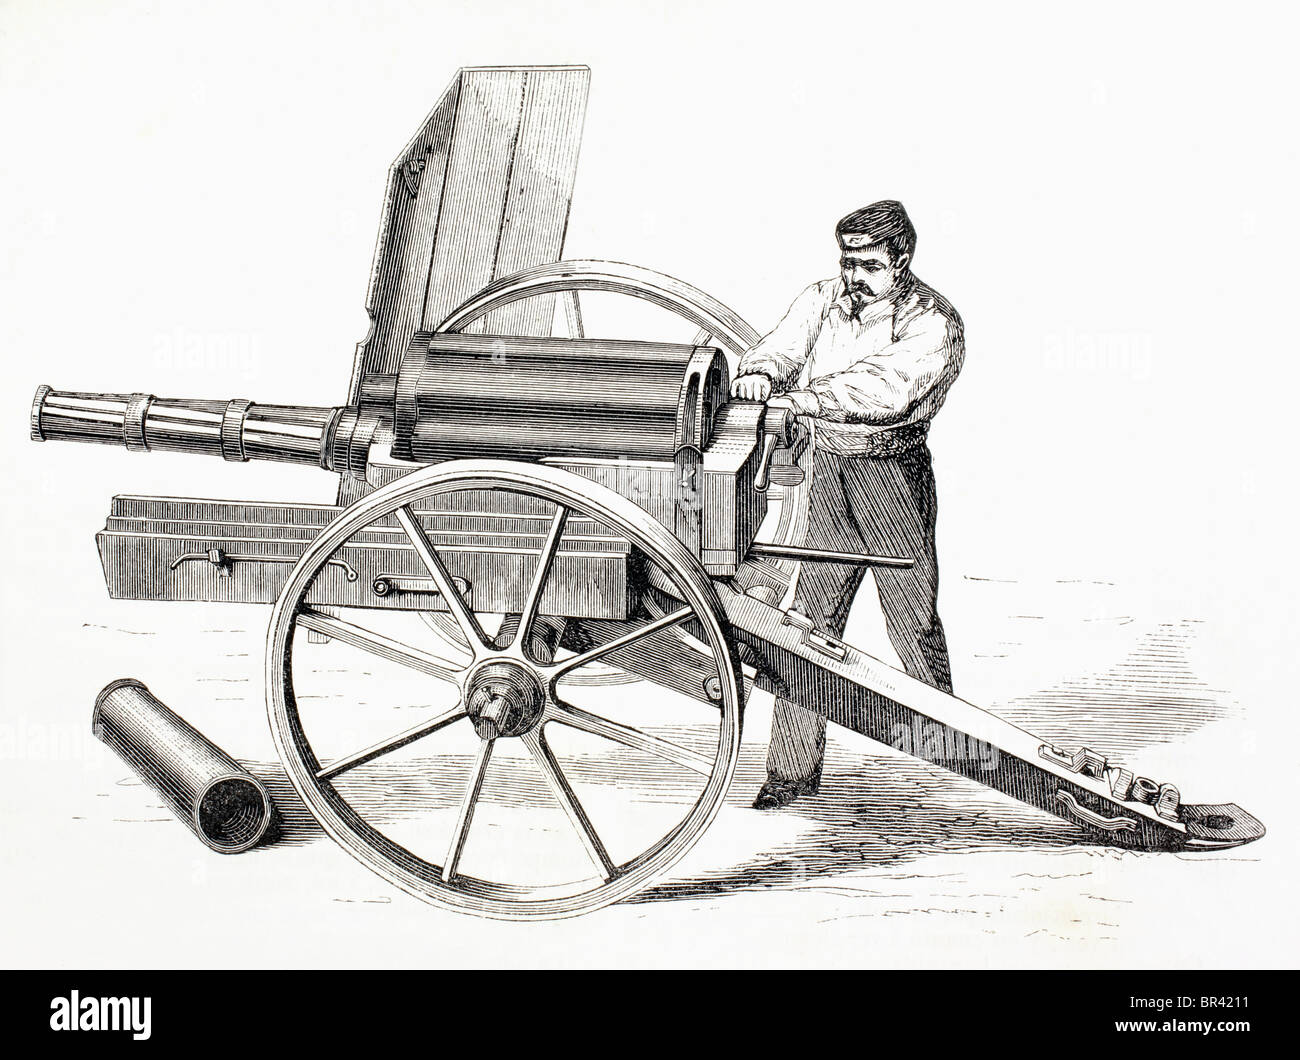 Revolving cannon patented by J.A. de Brame in 1861. - Stock Image